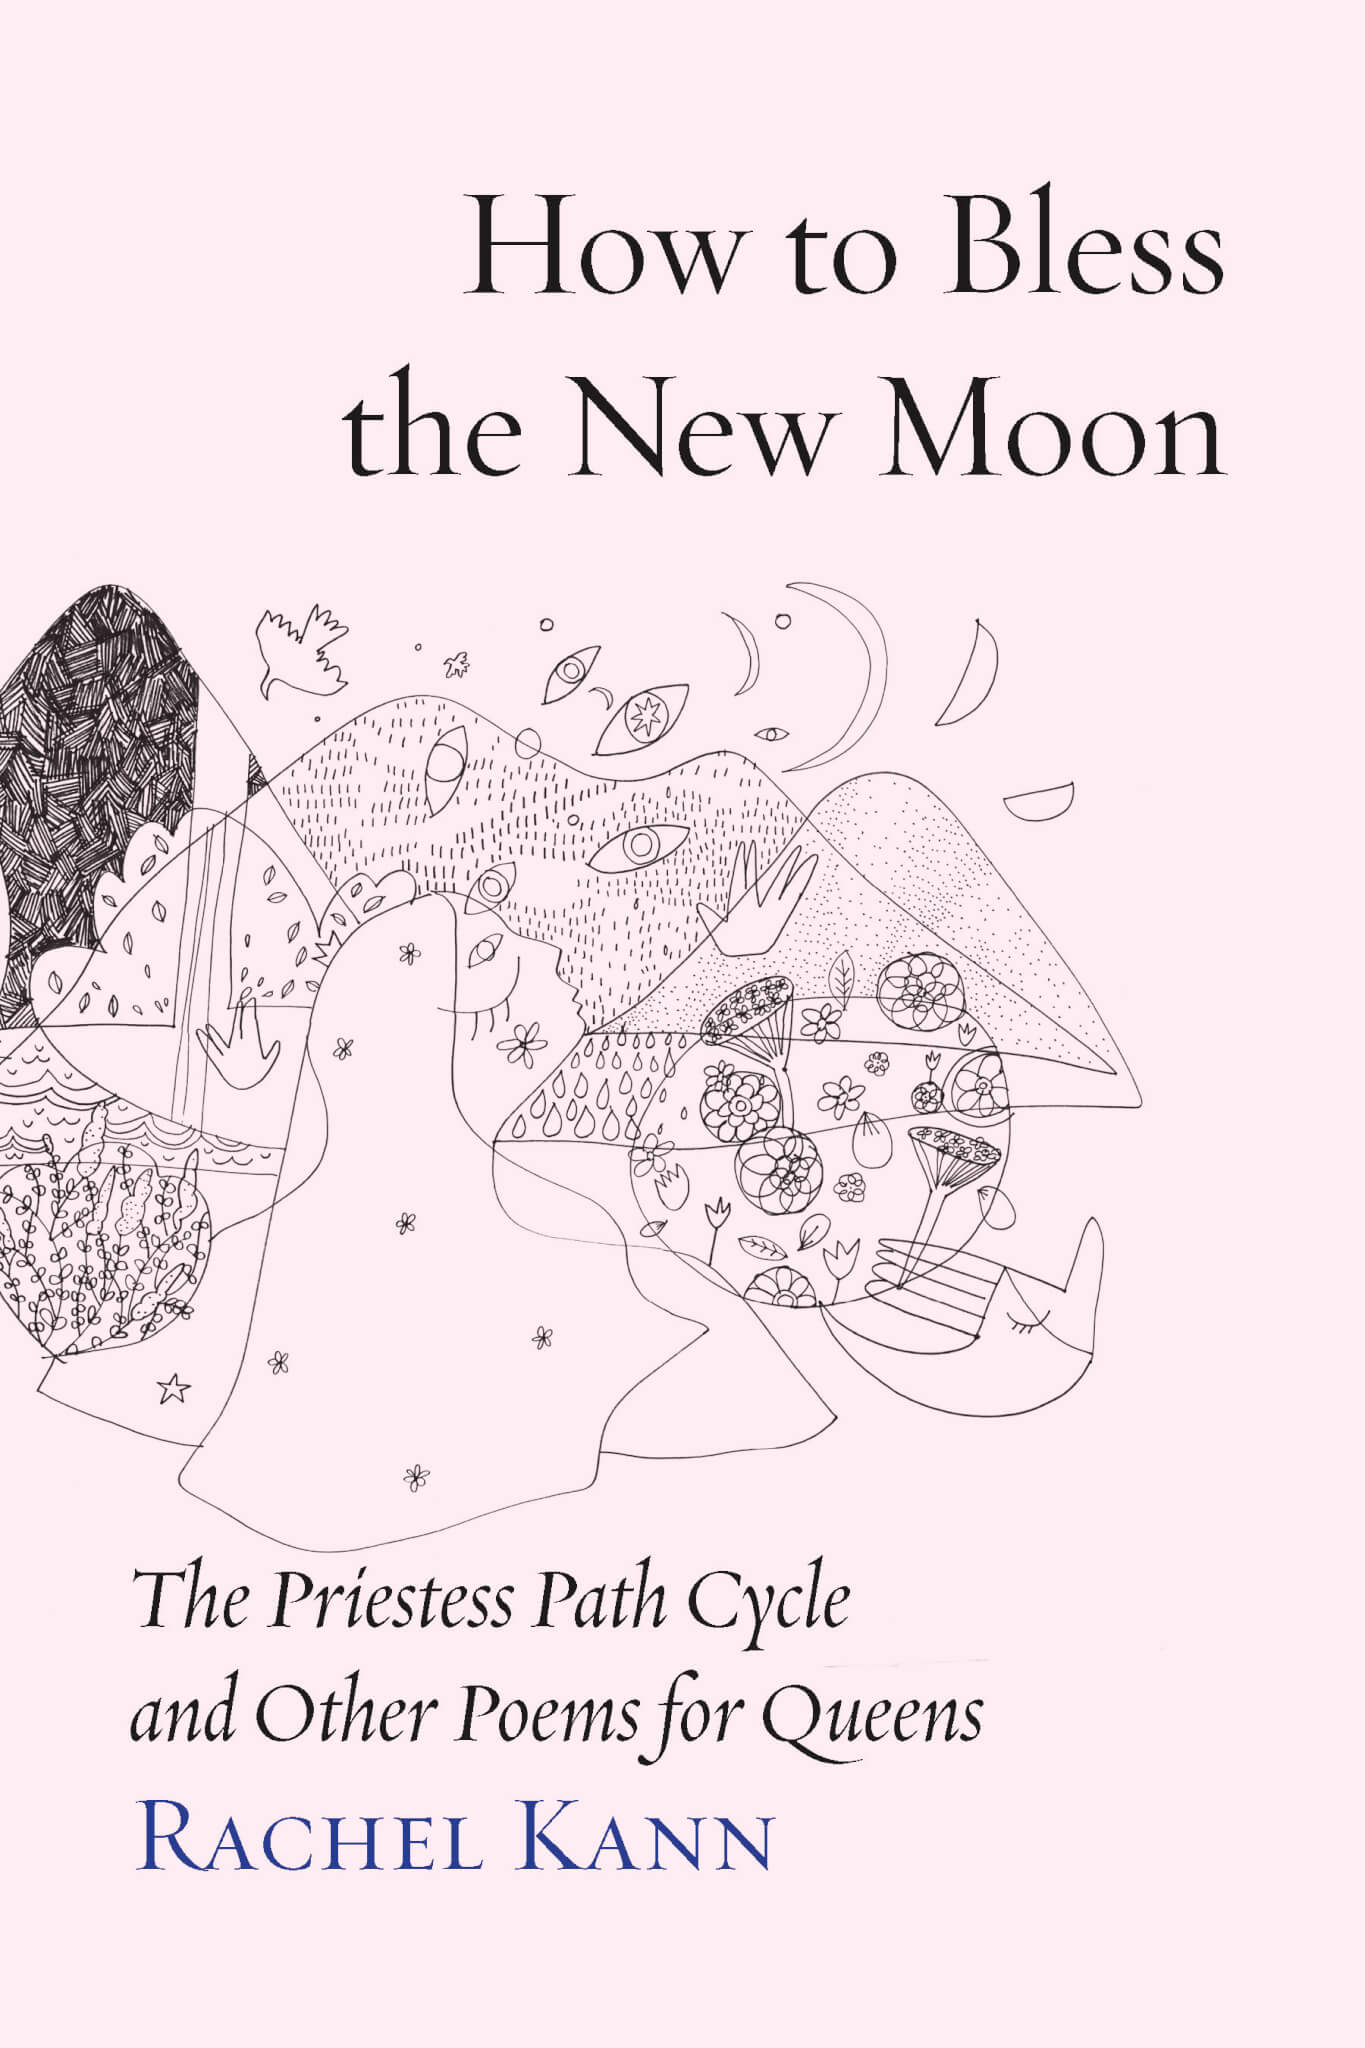 How to Bless the New Moon